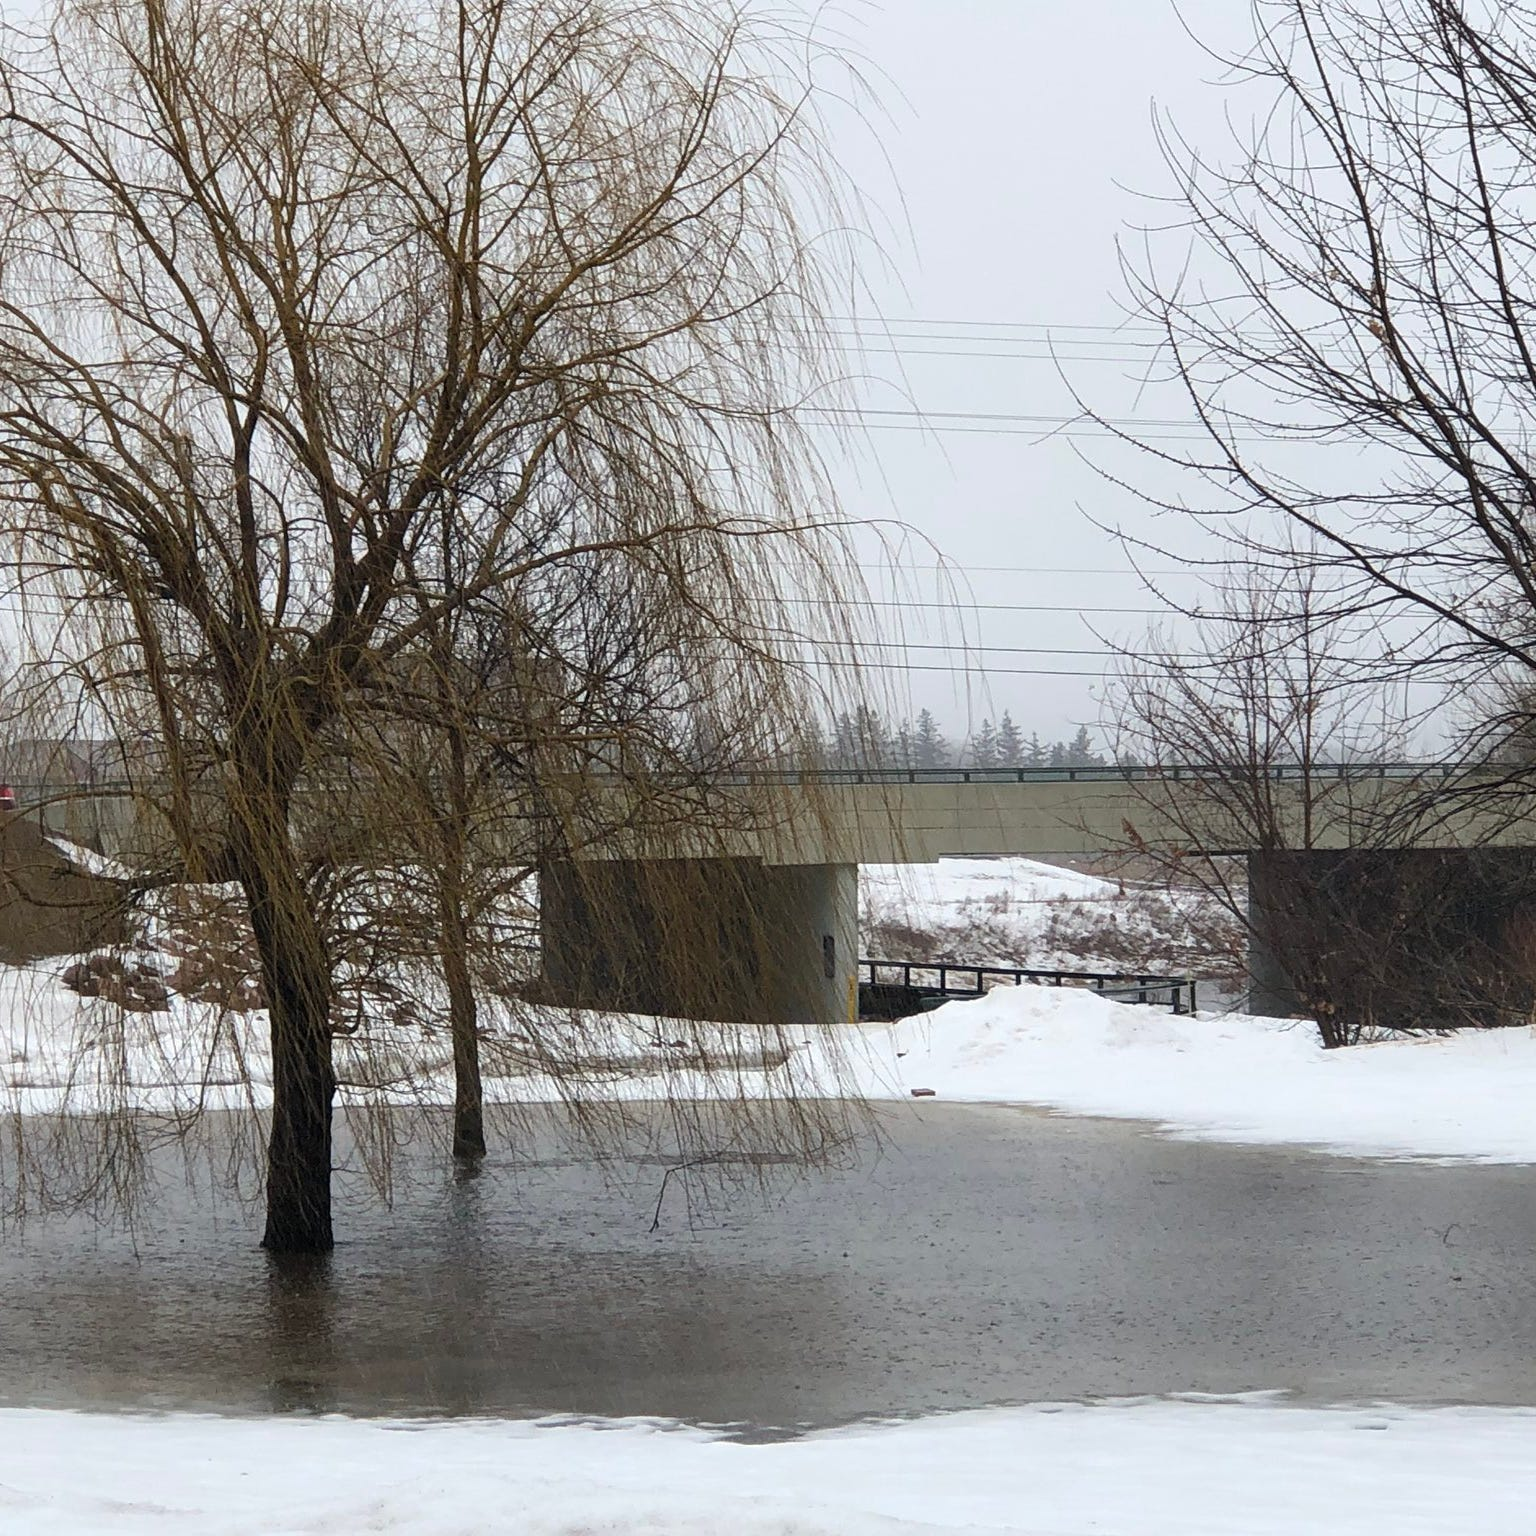 Flood warning issued for most of southeastern South Dakota